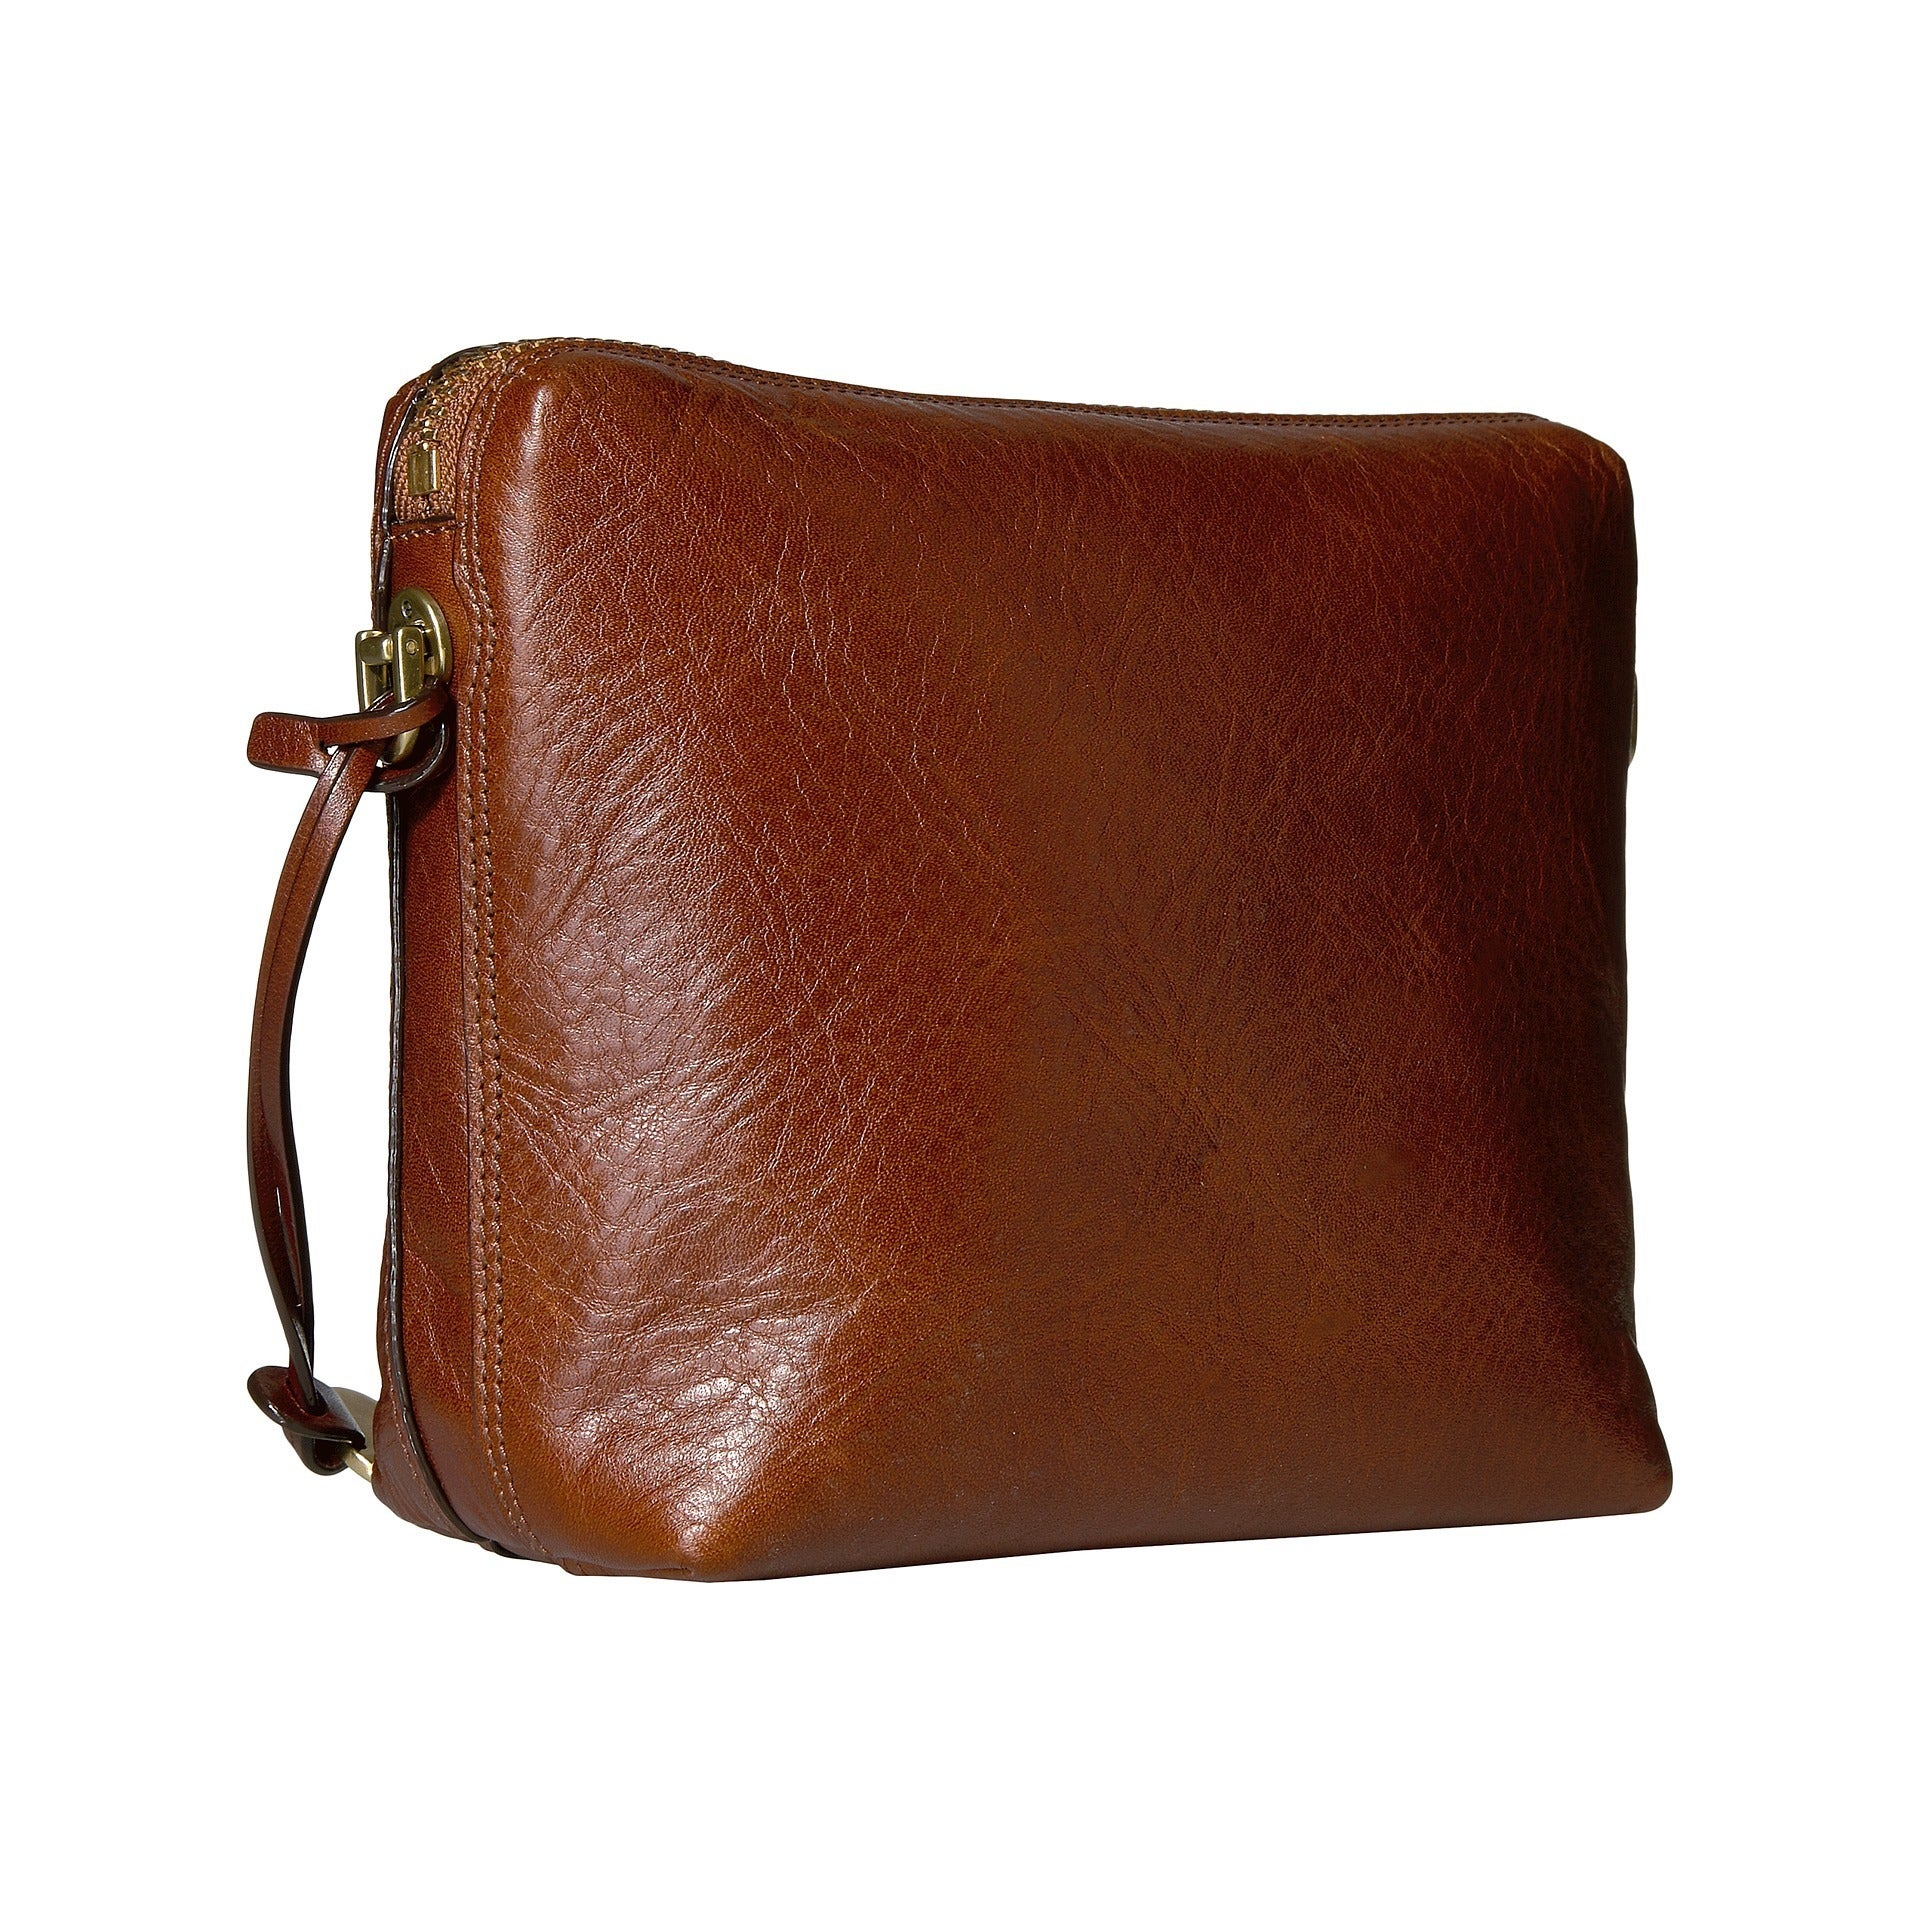 93e649d54b0a Shop Fossil Maya Brown Leather Crossbody Handbag - Ships To Canada -  Overstock - 15942793